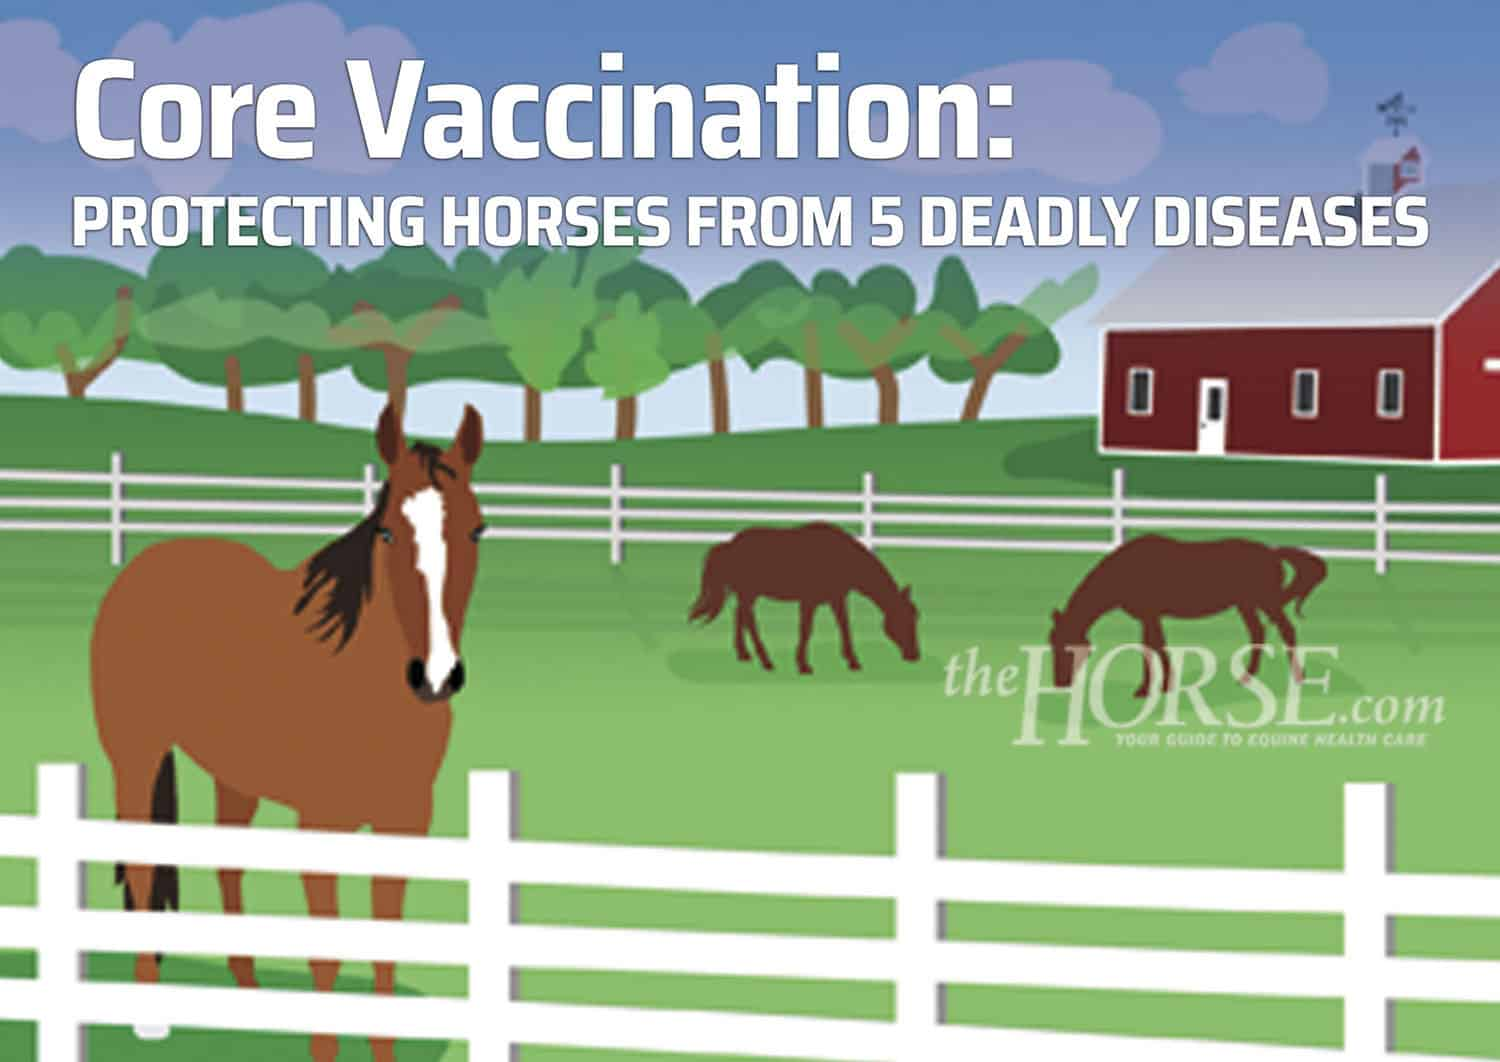 Core Vaccination: Protecting Horses From 5 Deadly Diseases